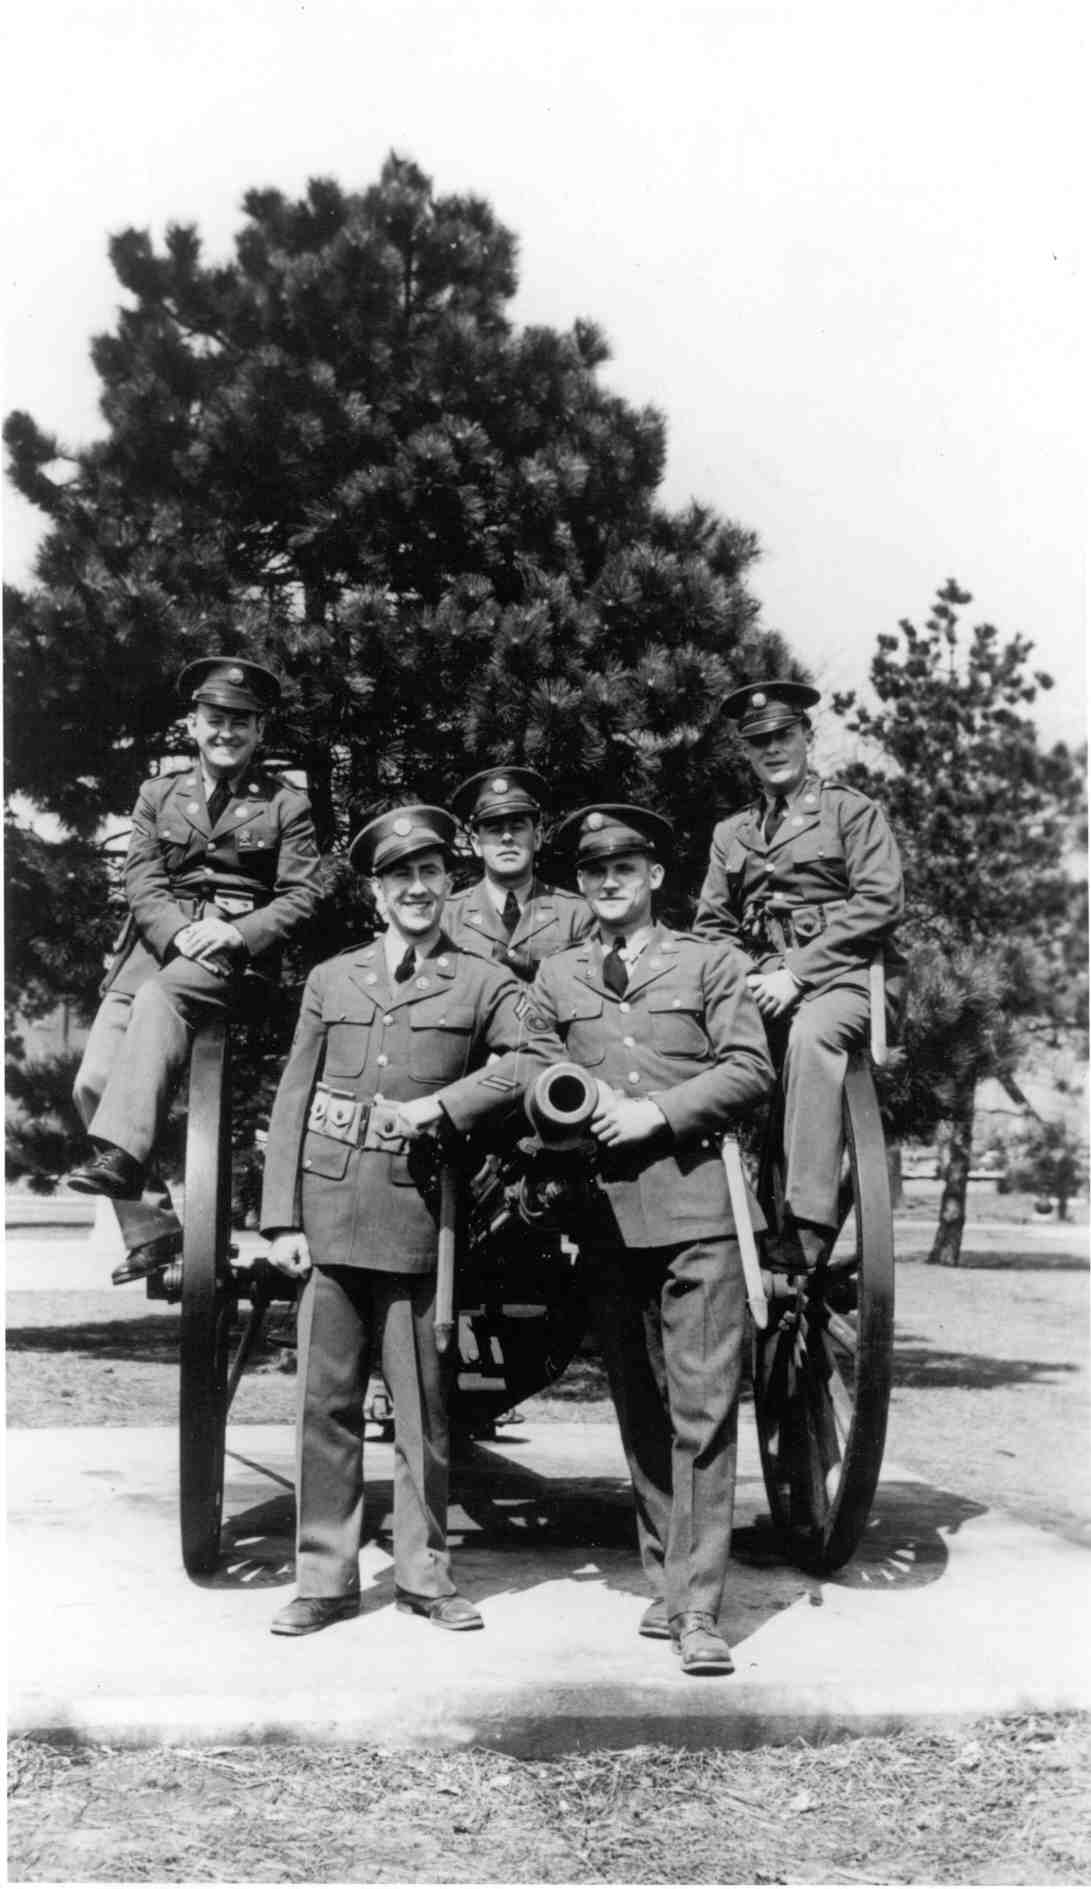 Soldiers pose on salute gun at flagpole on Fort Hancock Parade Ground, c. 1942.